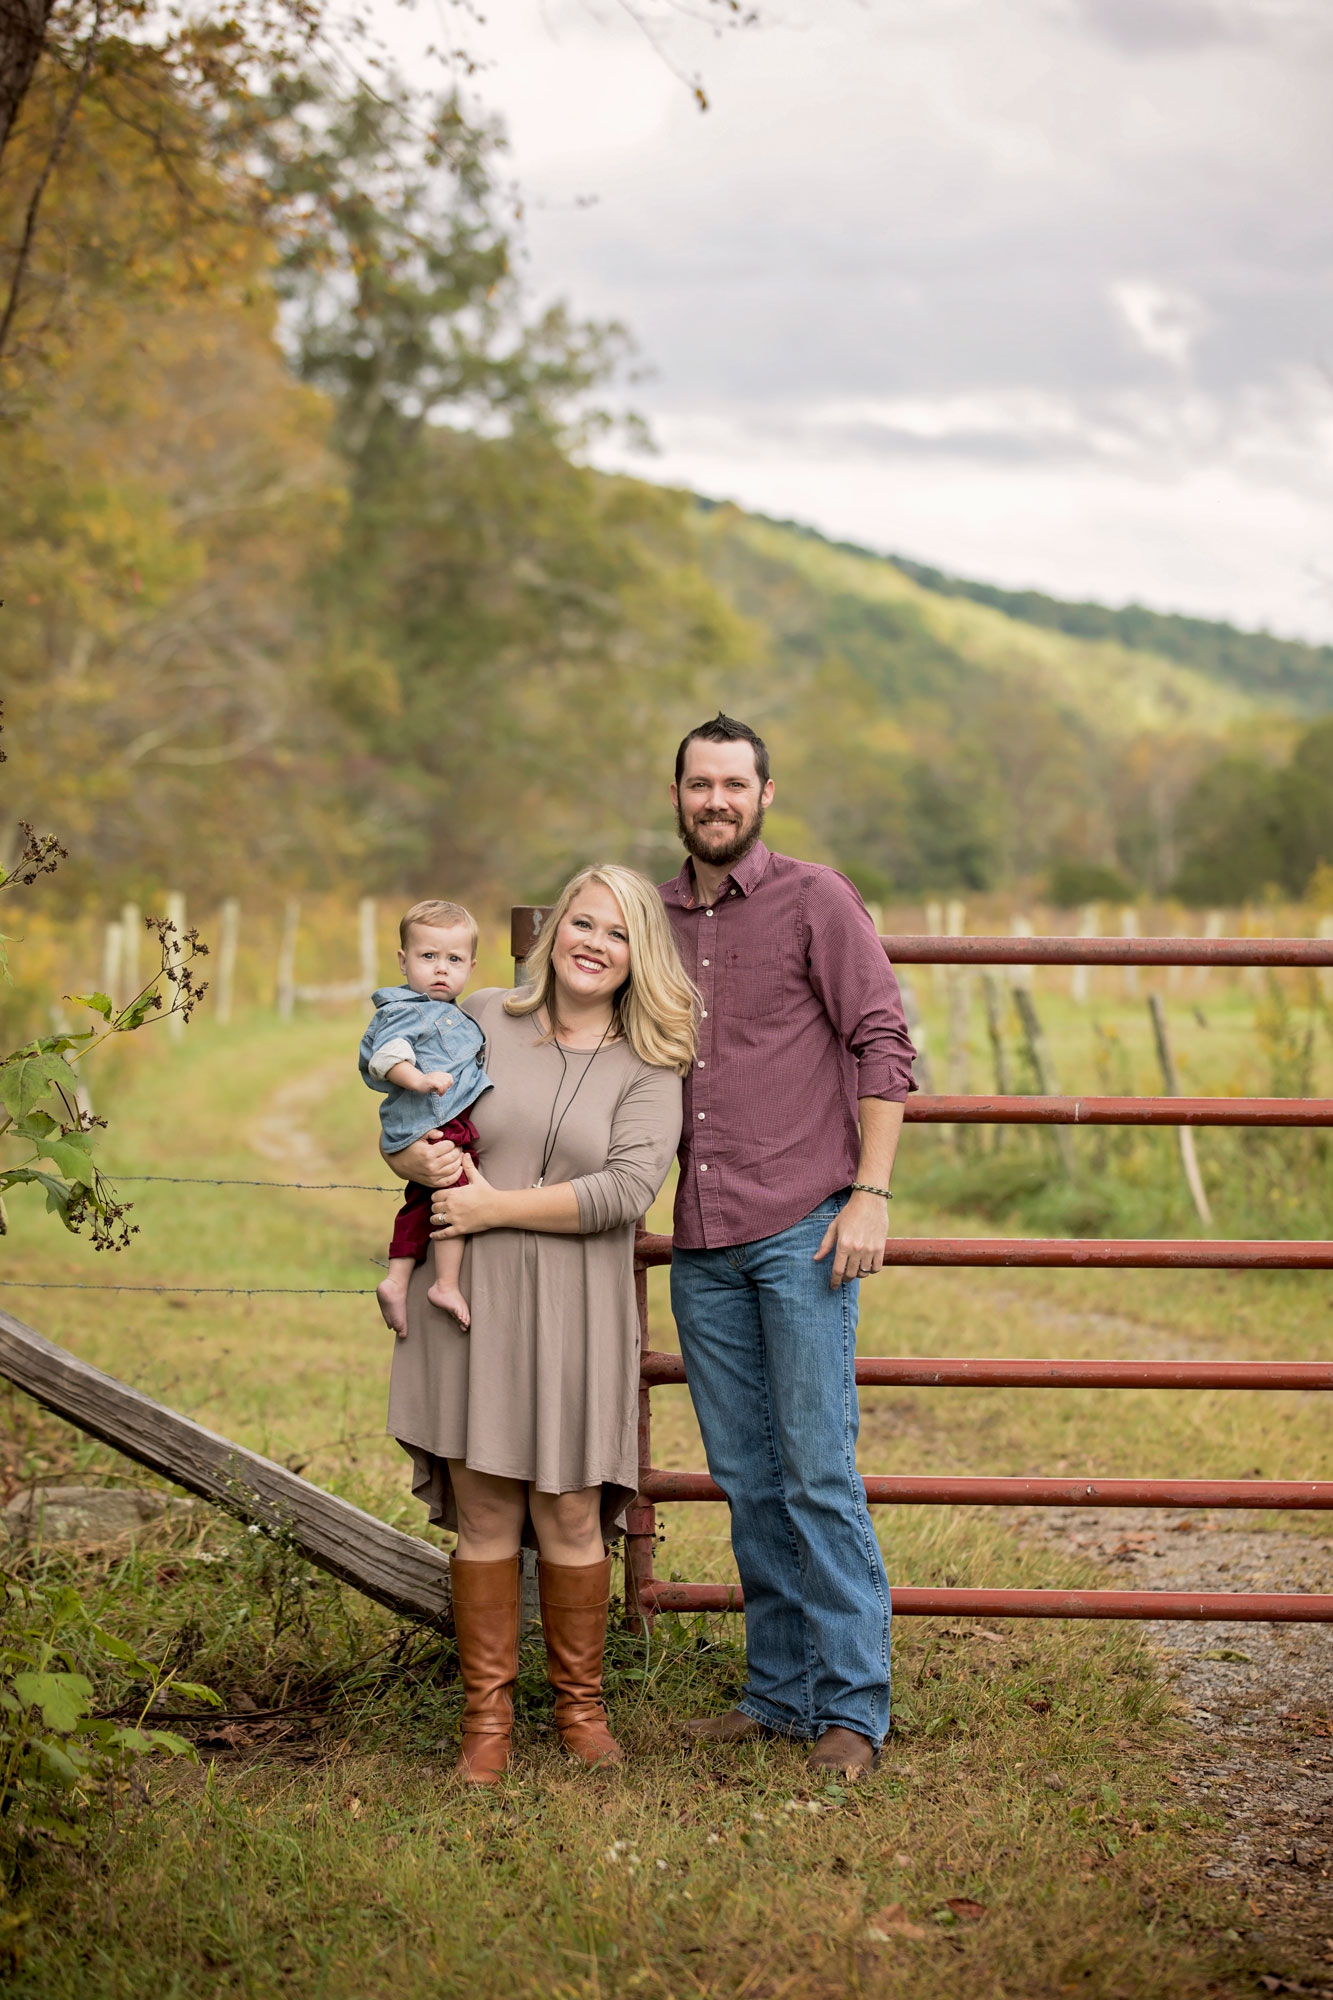 gatlinburg-vacation-family-picture-rustic-fence.jpg